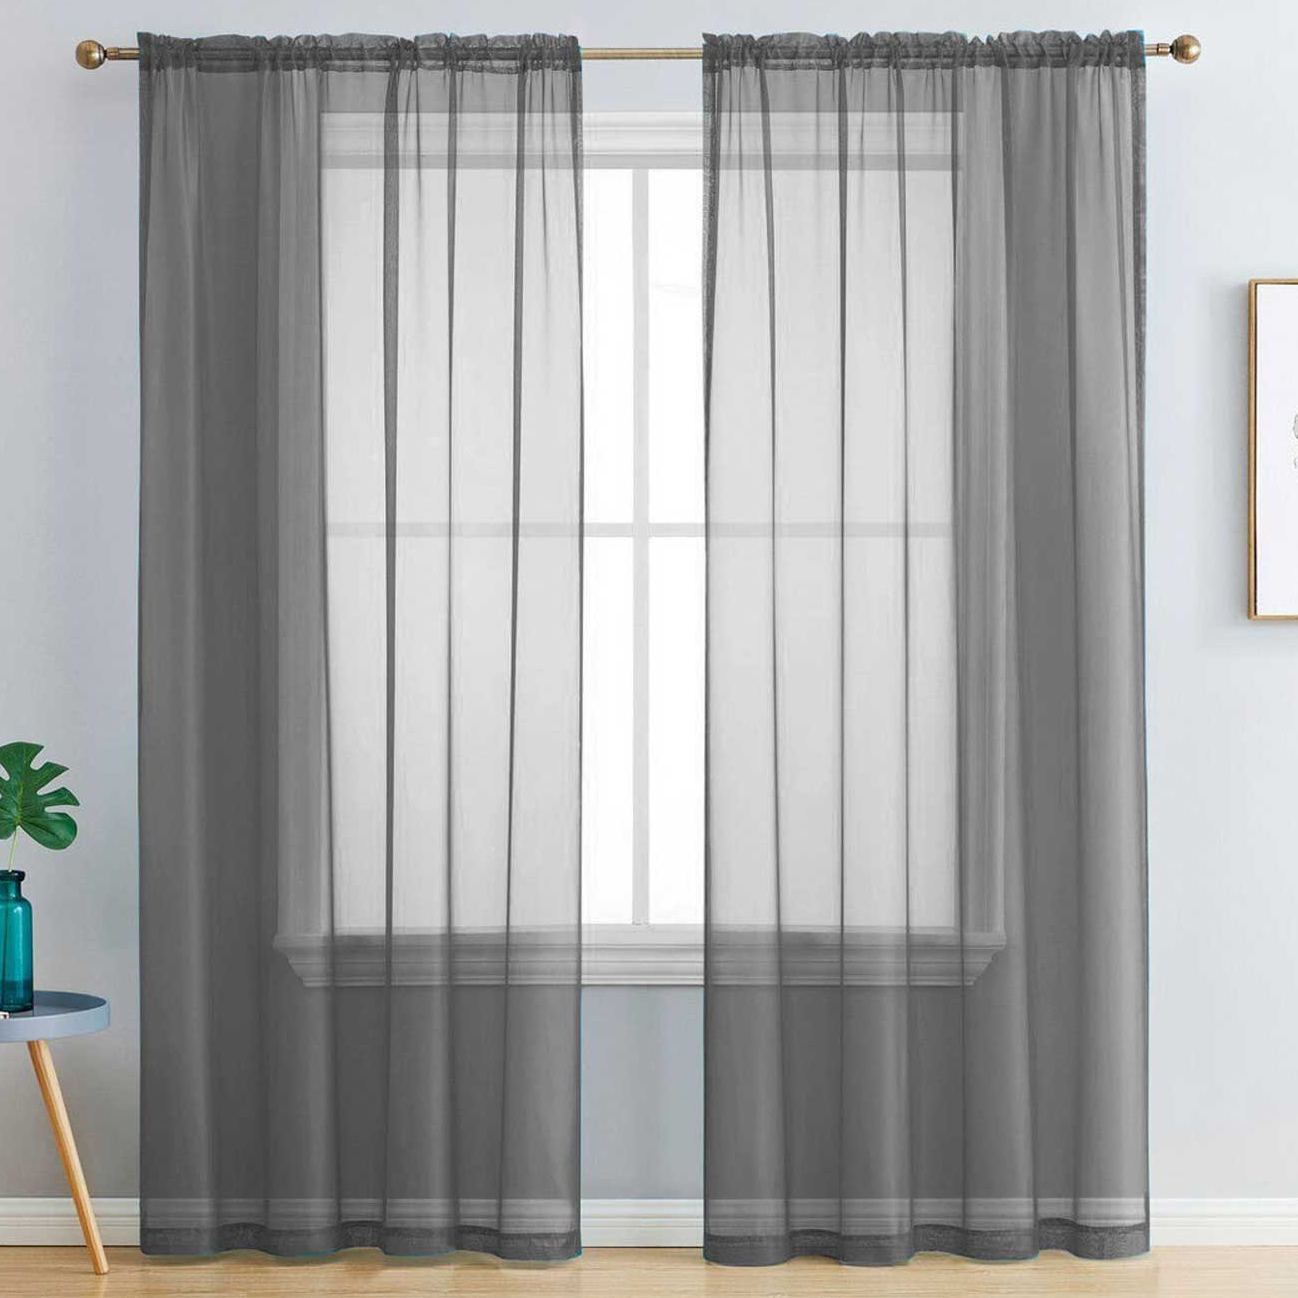 Luxton Dark Grey Luxton Rod Pocket Voile Sheer Curtains Reviews Temple Webster